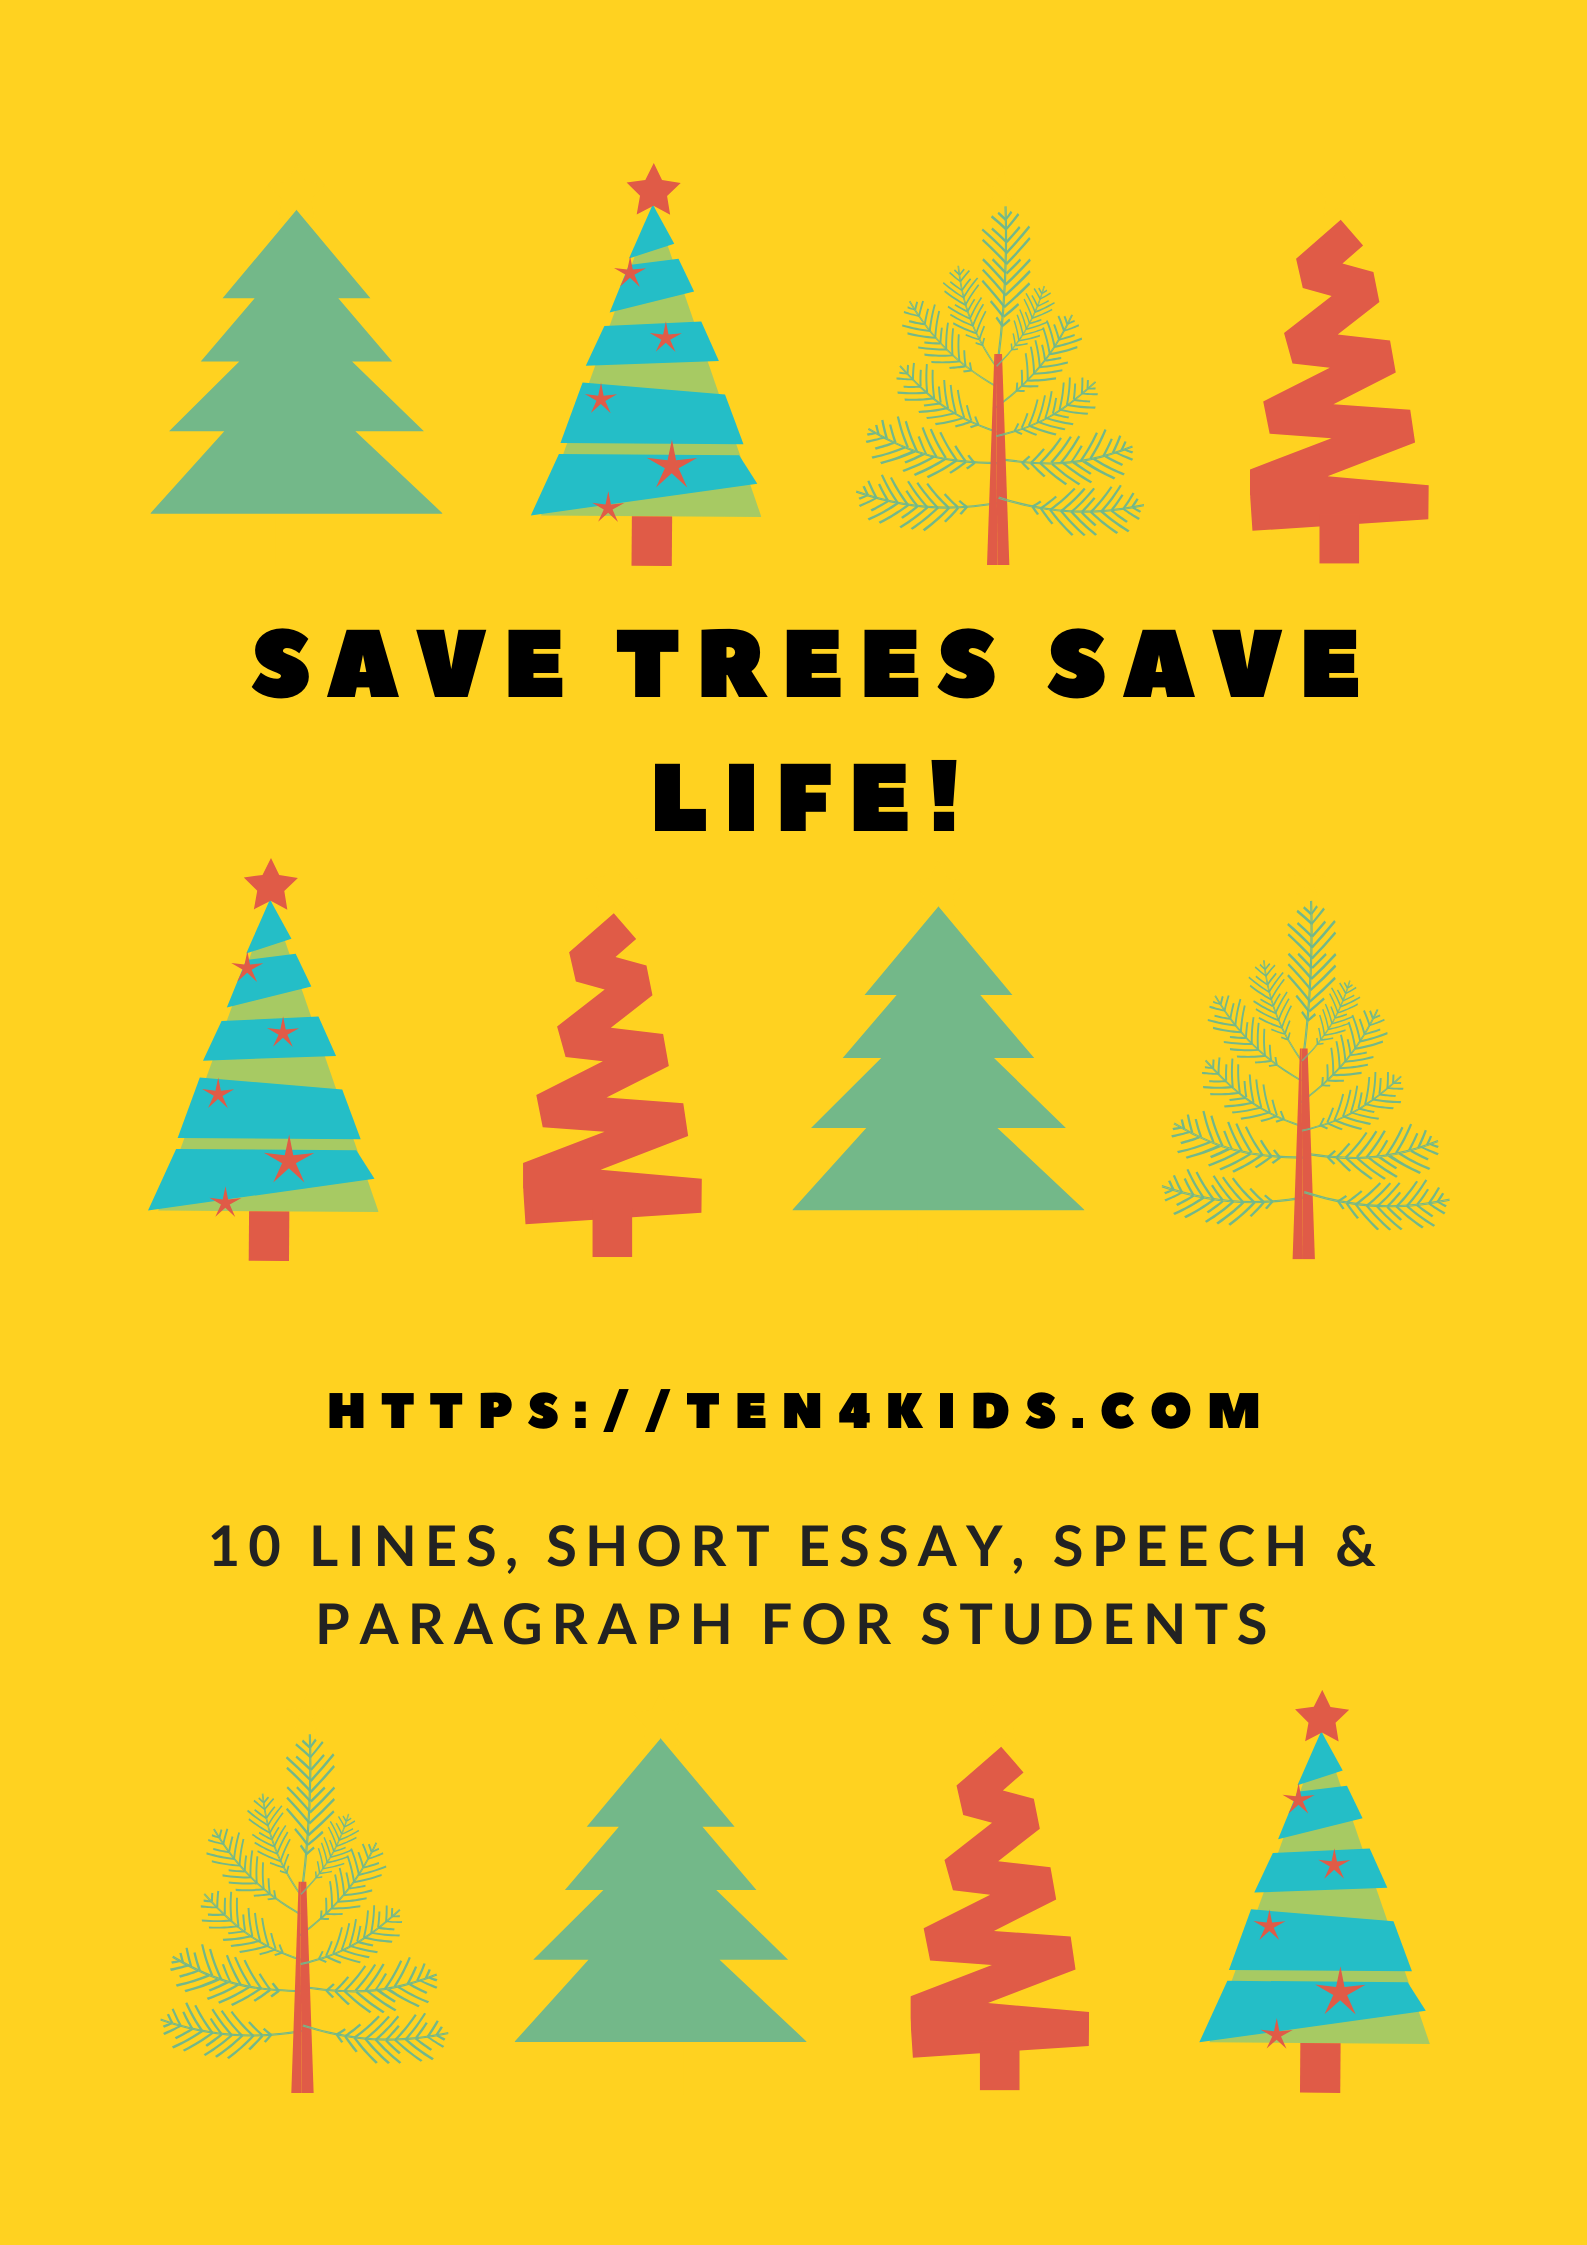 Save trees save life essay for students